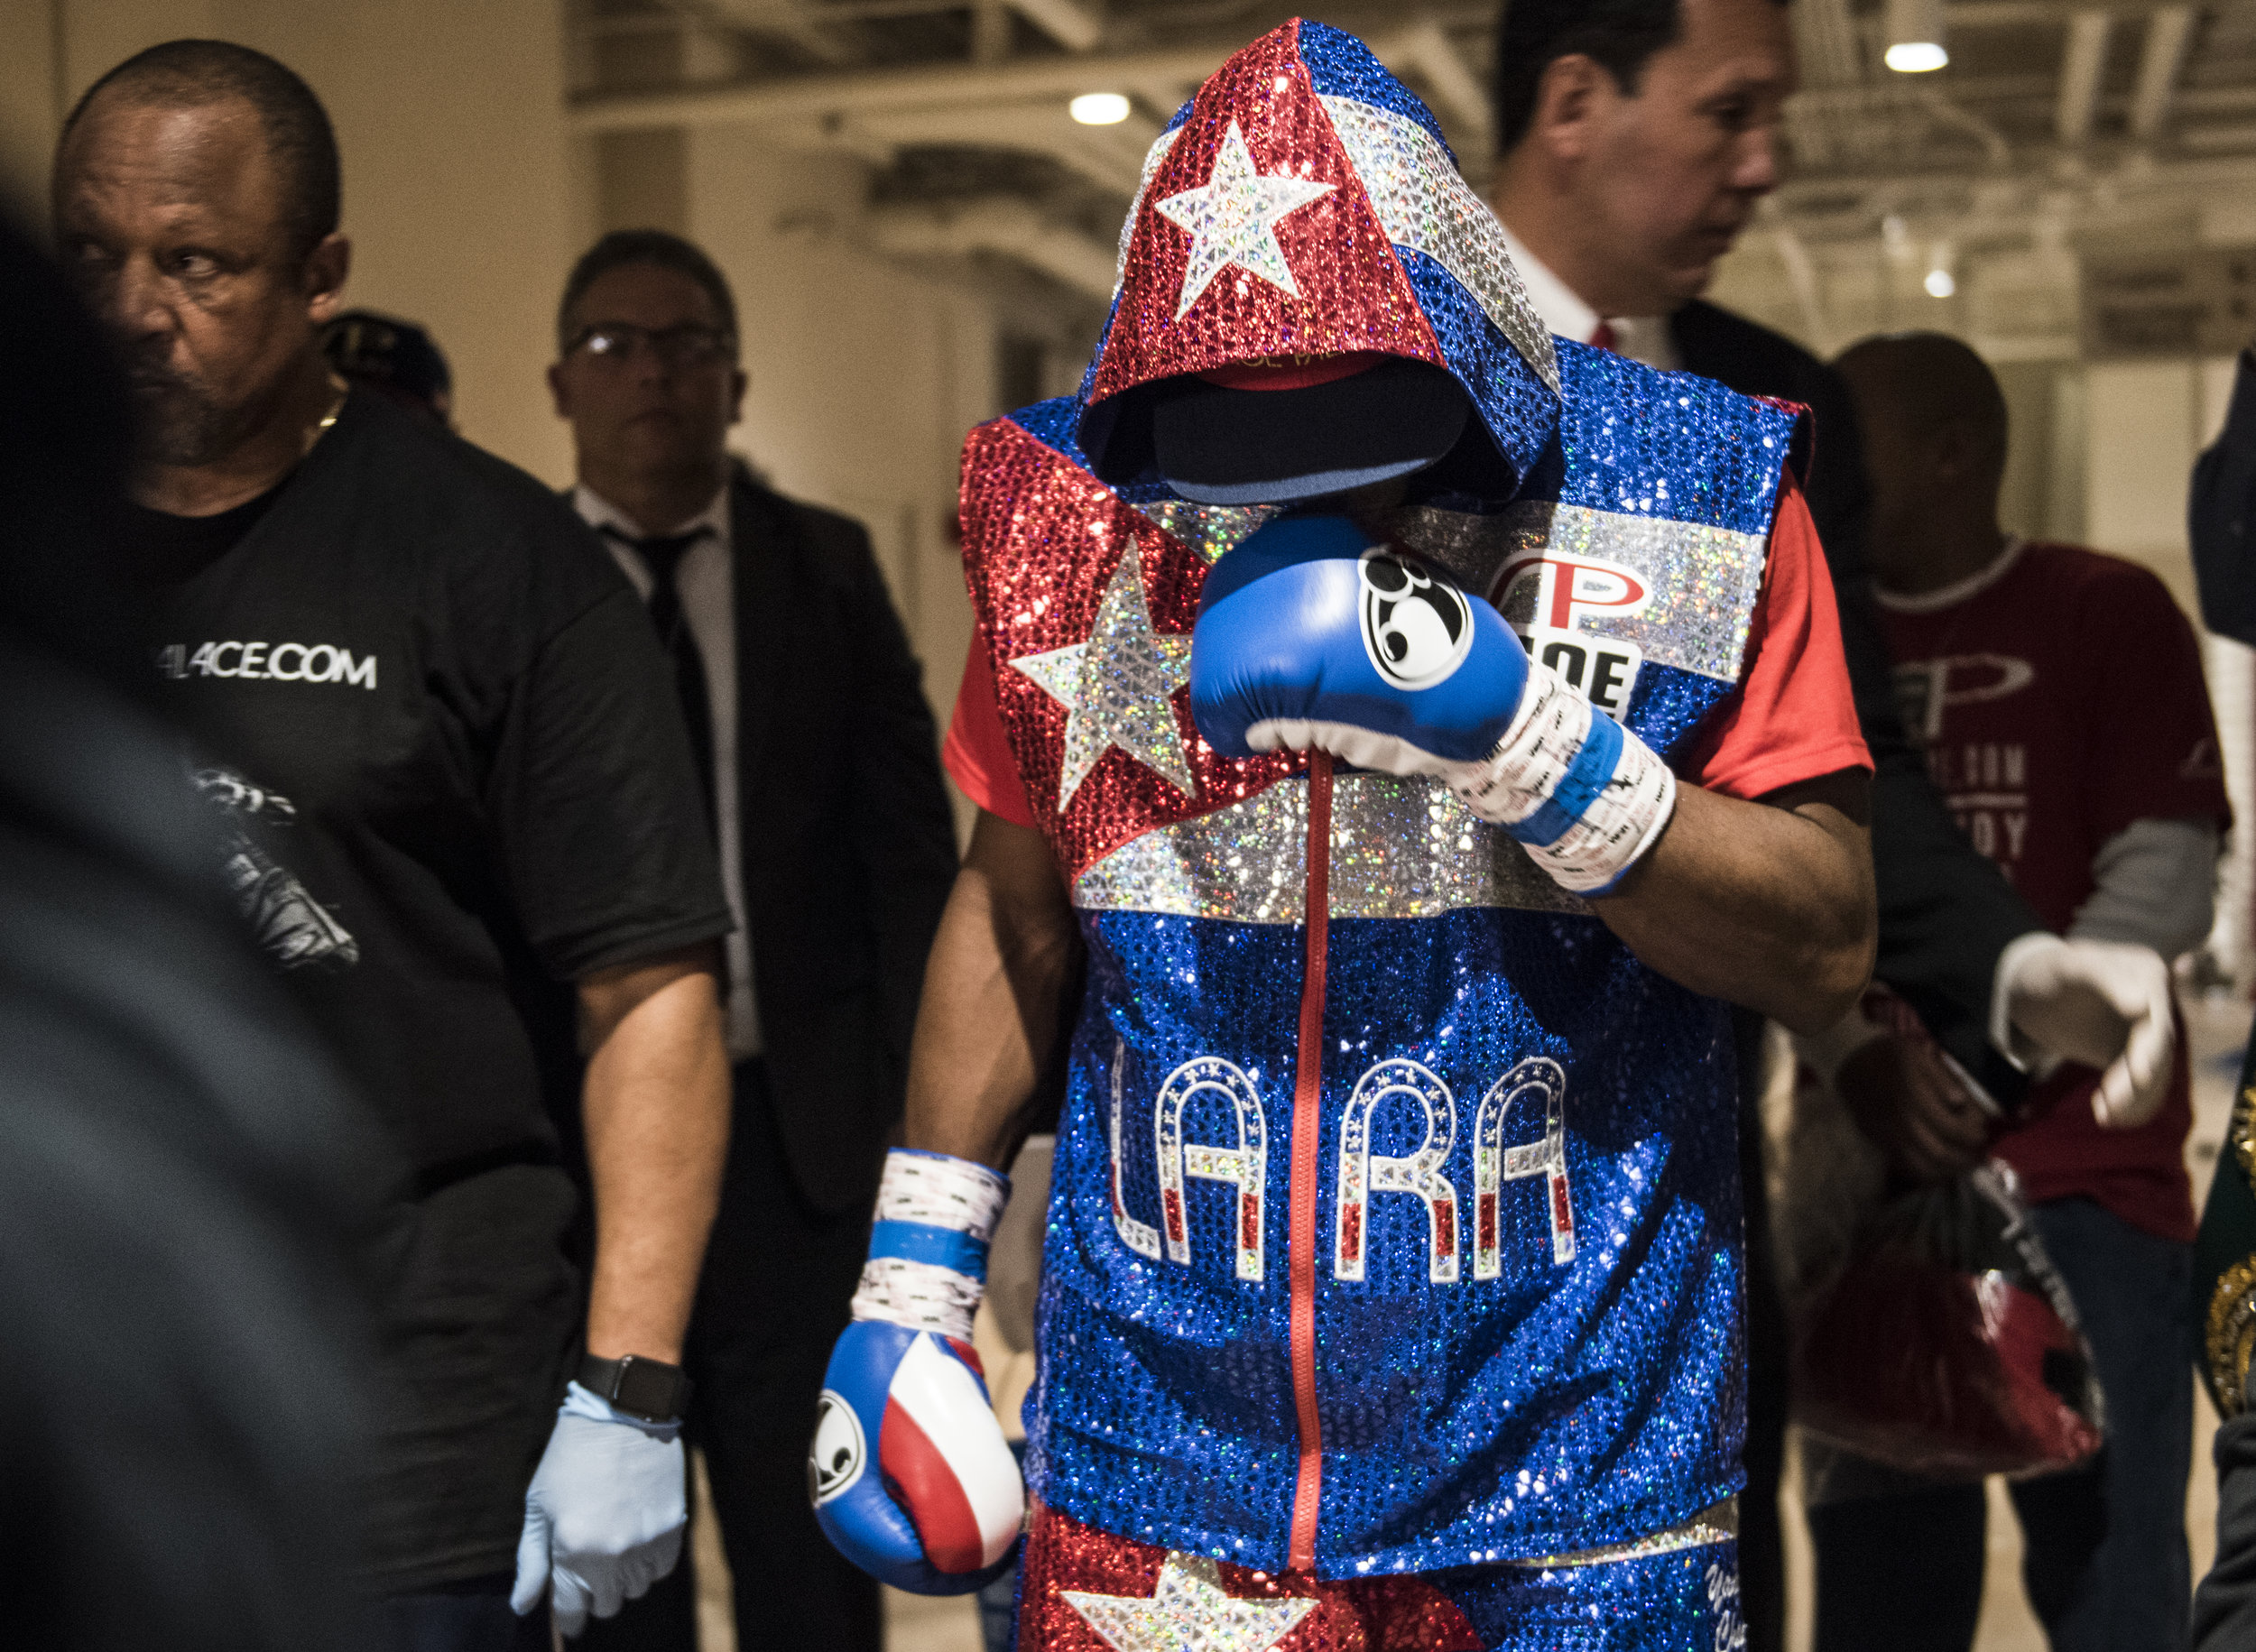 Cuban boxer Erislandy Lara moments before his fight with Yuri Foreman in Hialeah Casino Park.